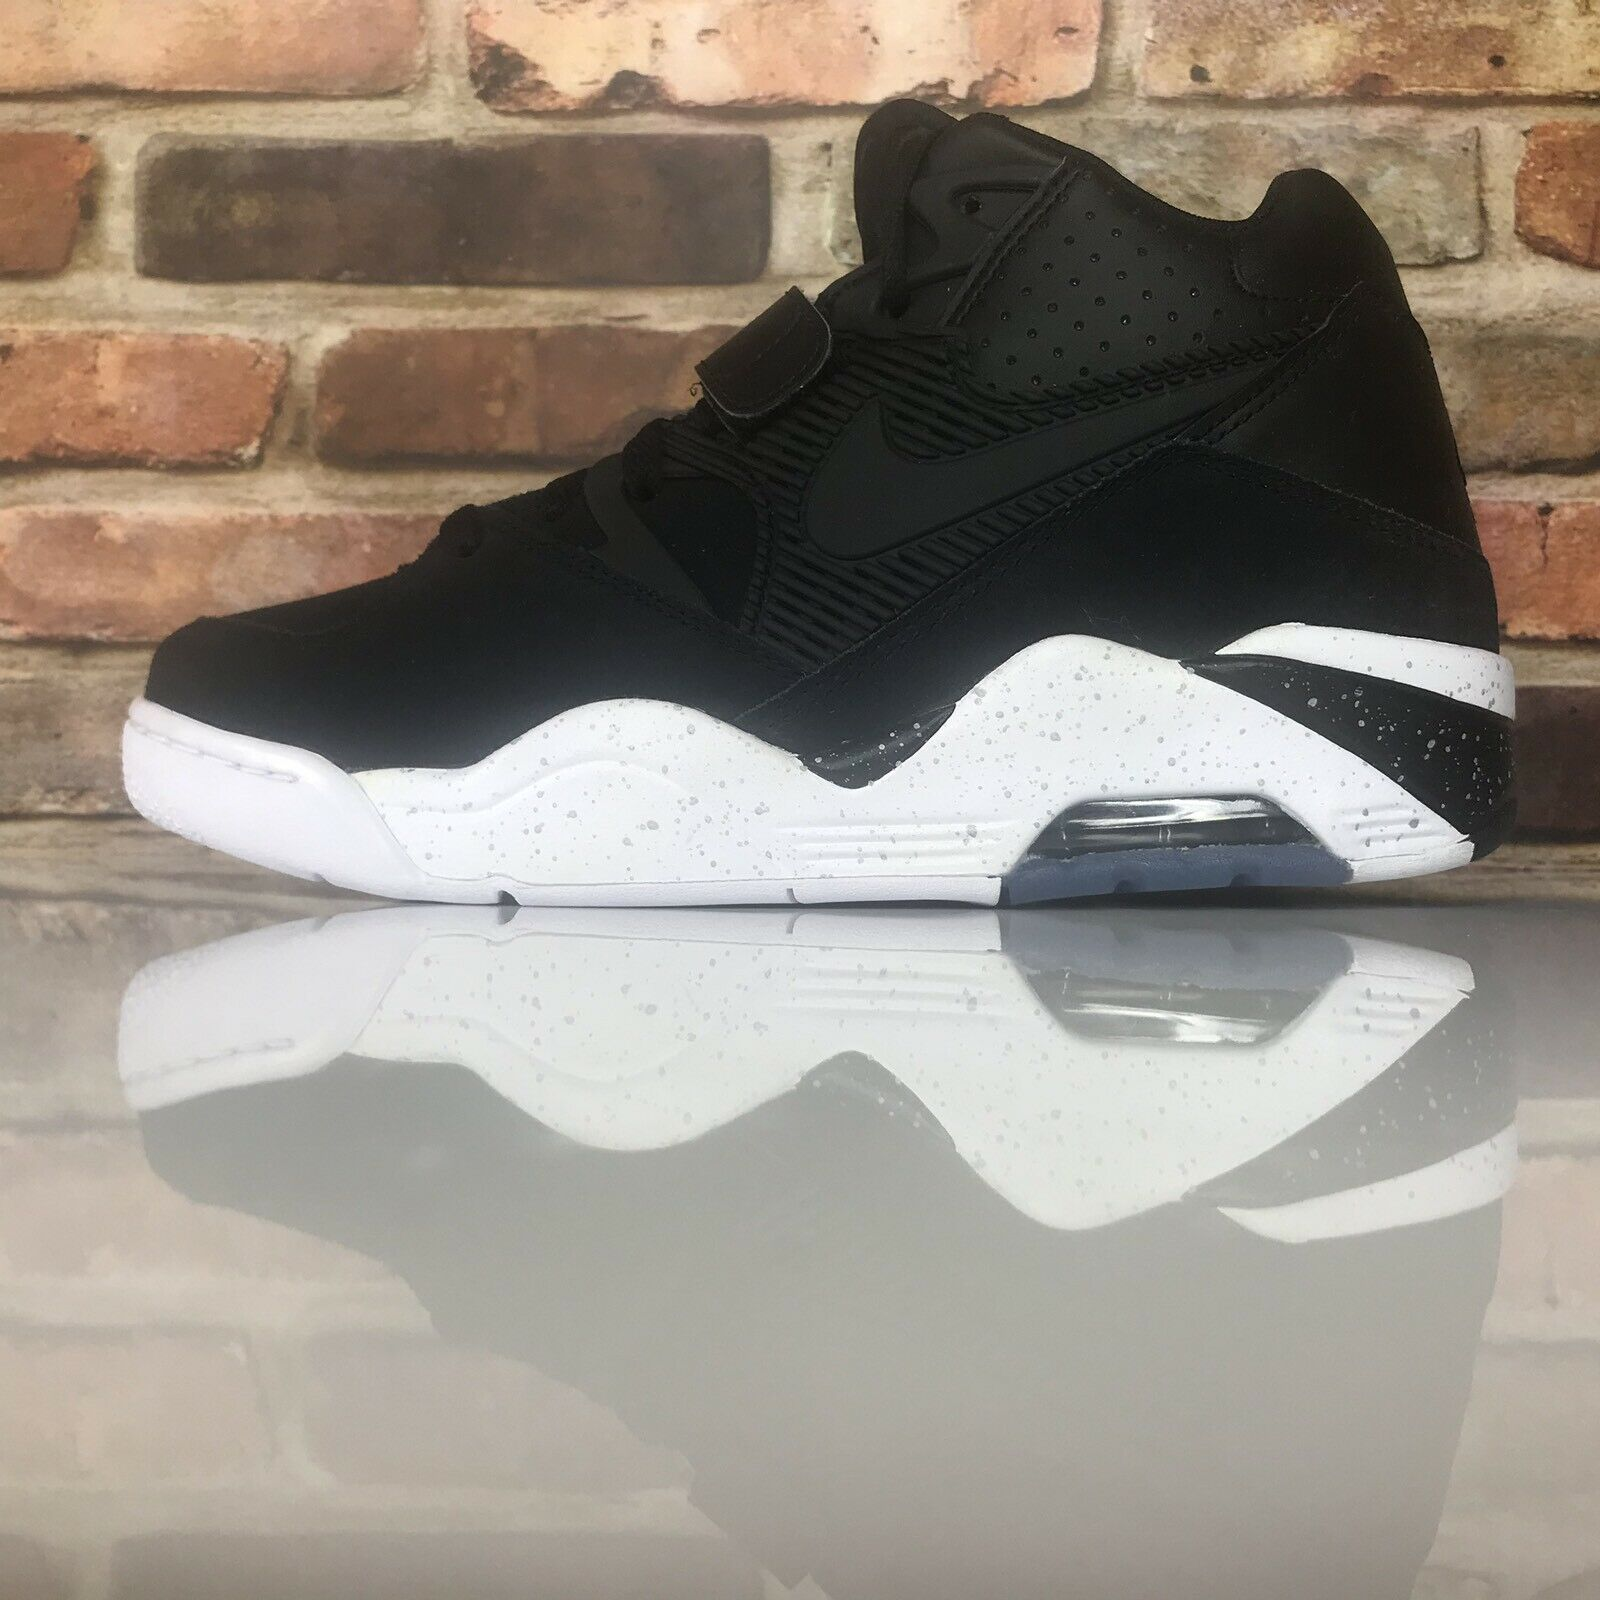 newest 3cdd3 1c69b Nike Air Force Force Force 180 Basketball shoes Black-White 310095-003  Barkley Size